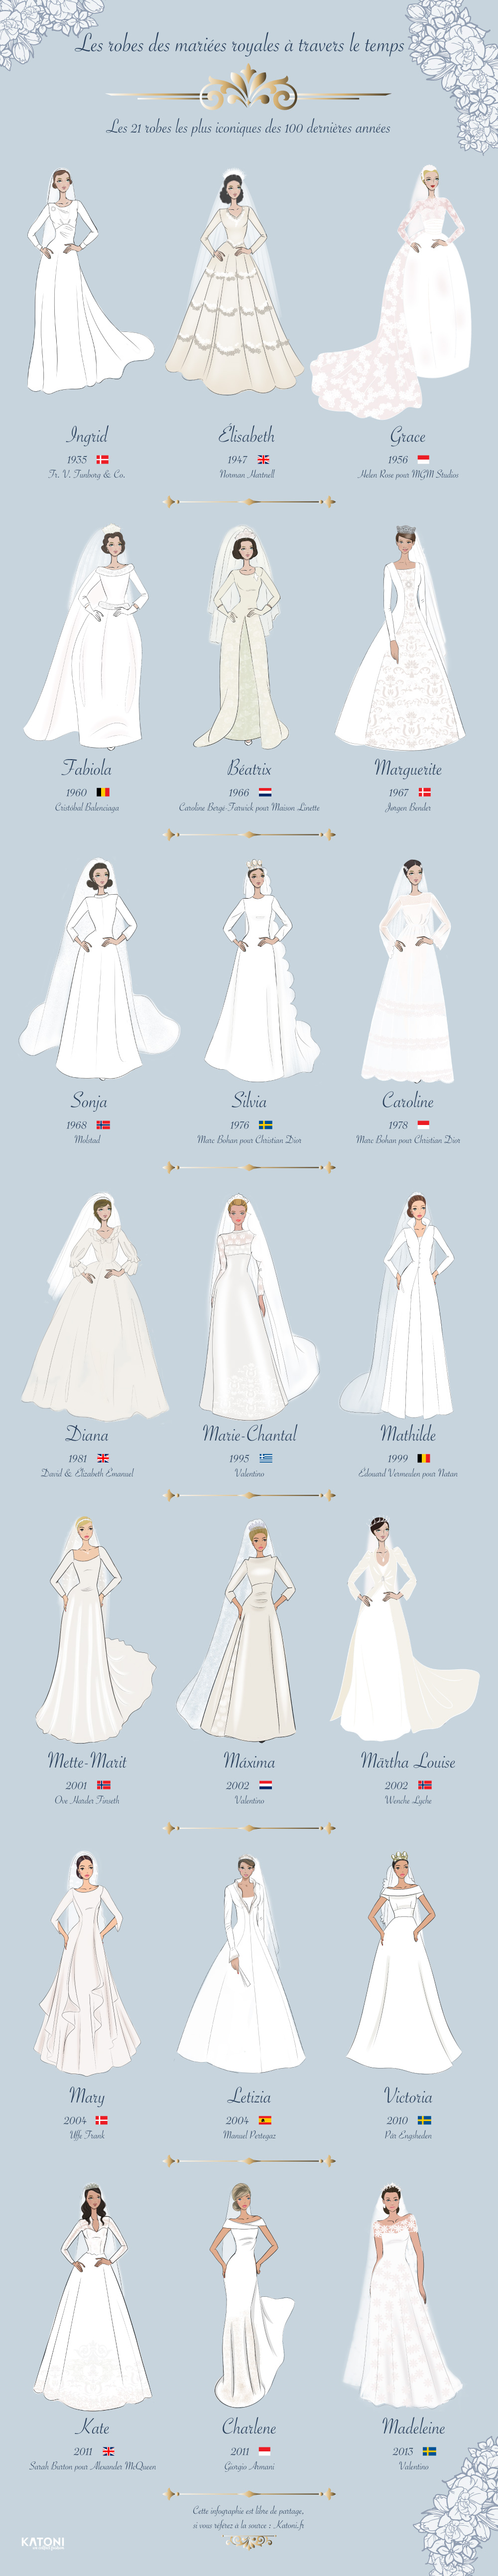 robes-mariees-royales